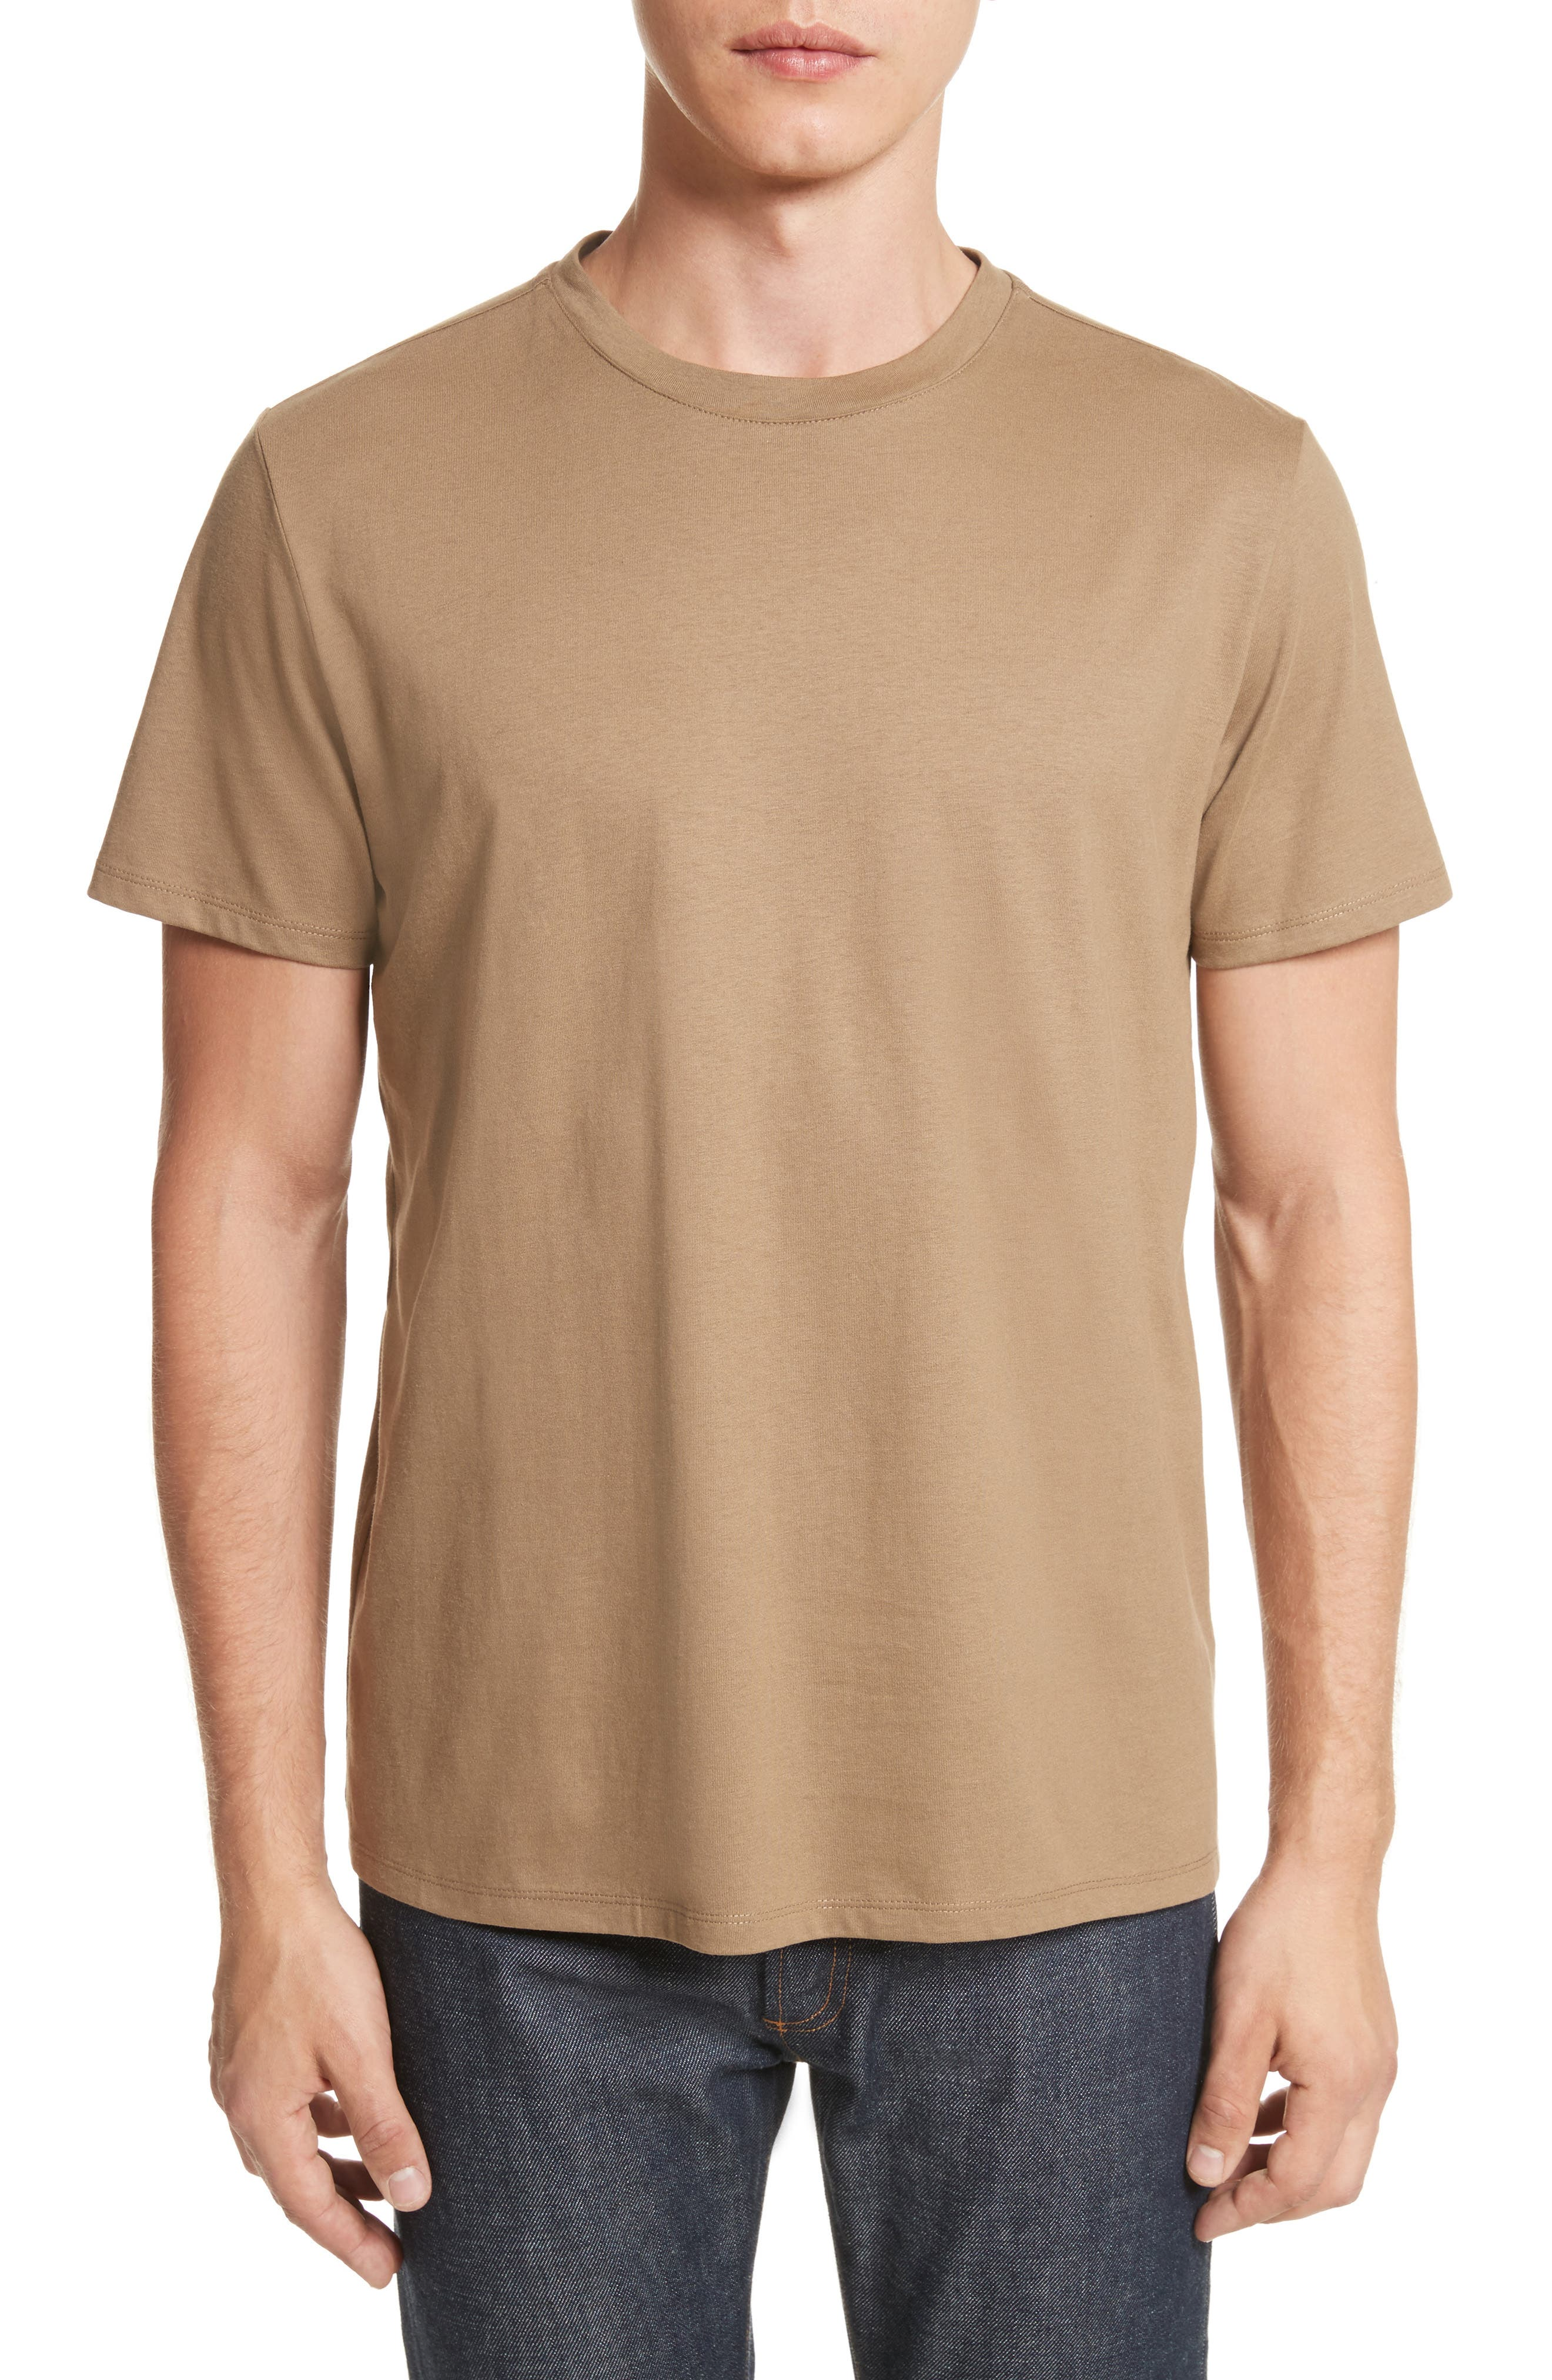 Jimmy T-Shirt,                         Main,                         color, Taupe